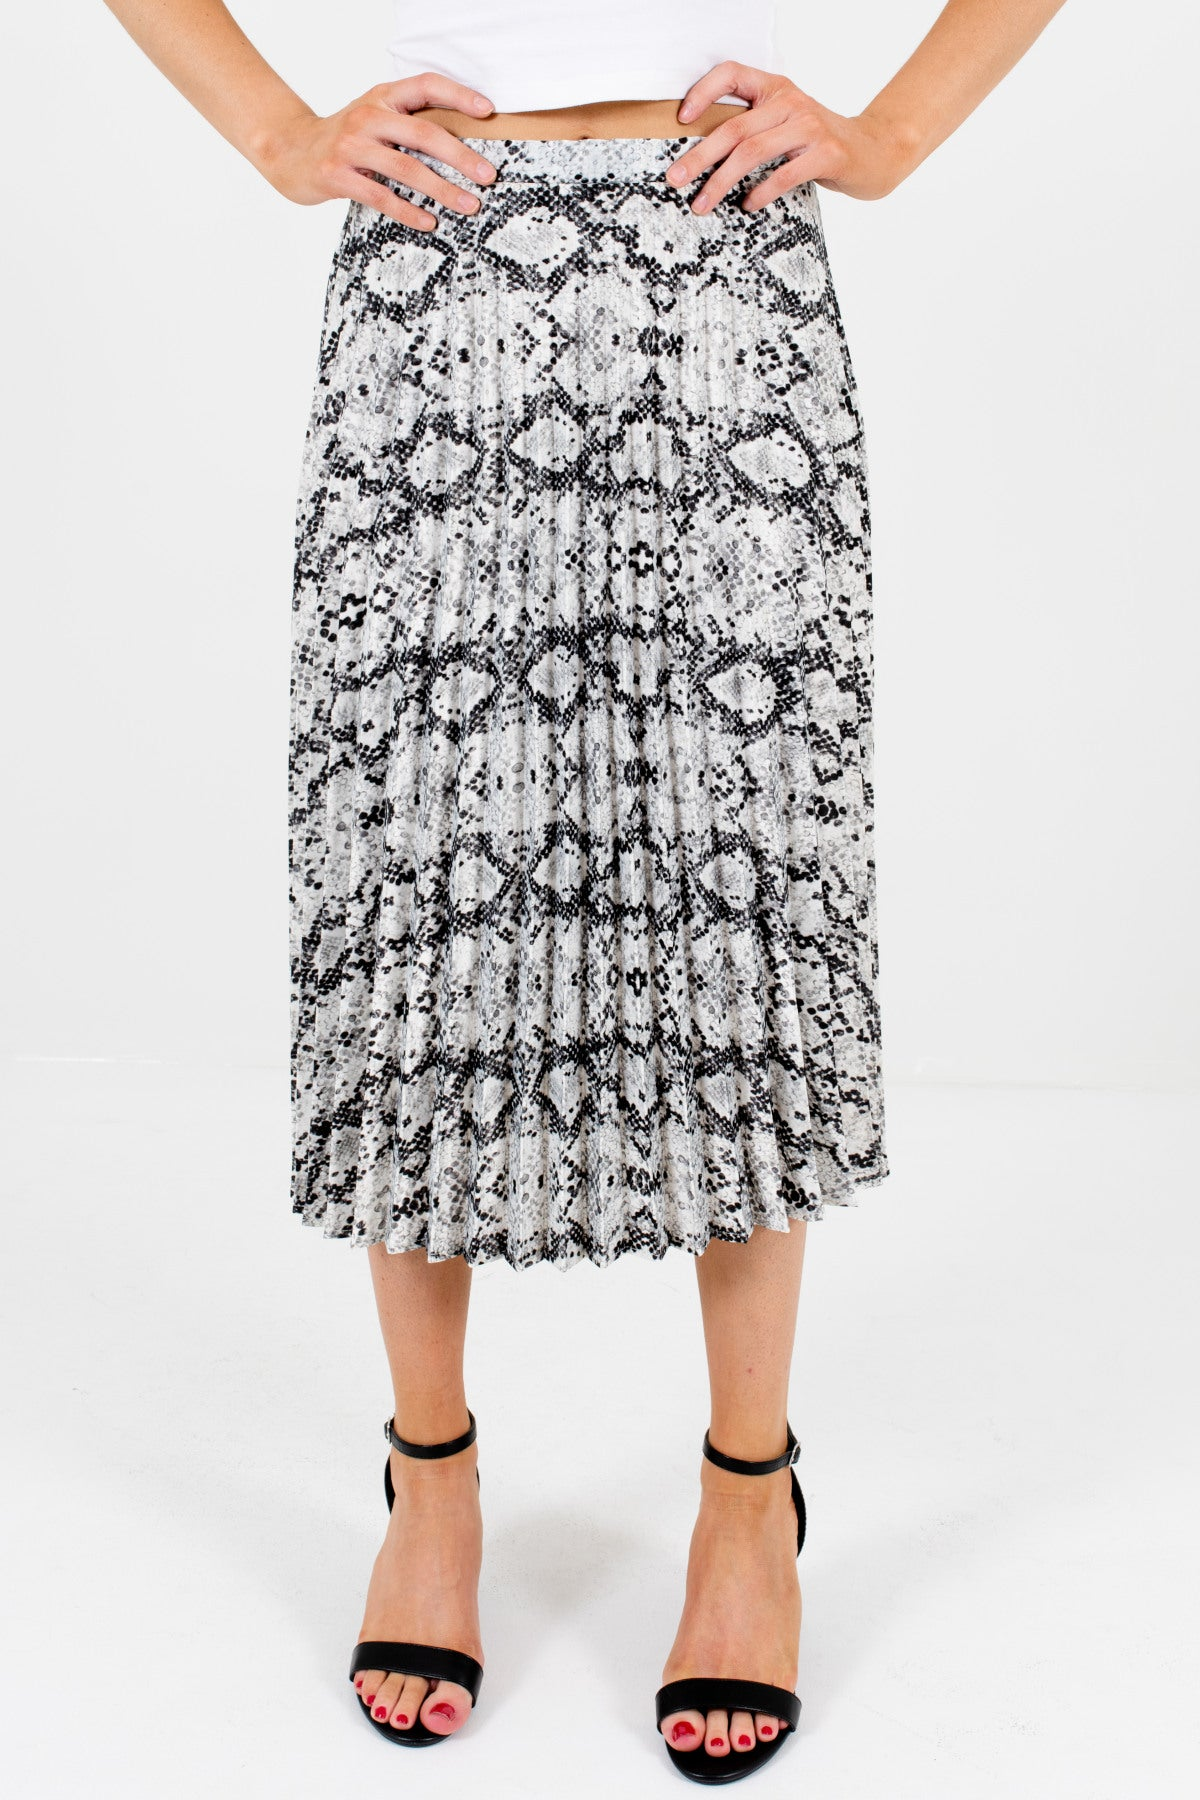 Gray White Black Snakeskin Snake Print Pleated Midi Skirts for Women